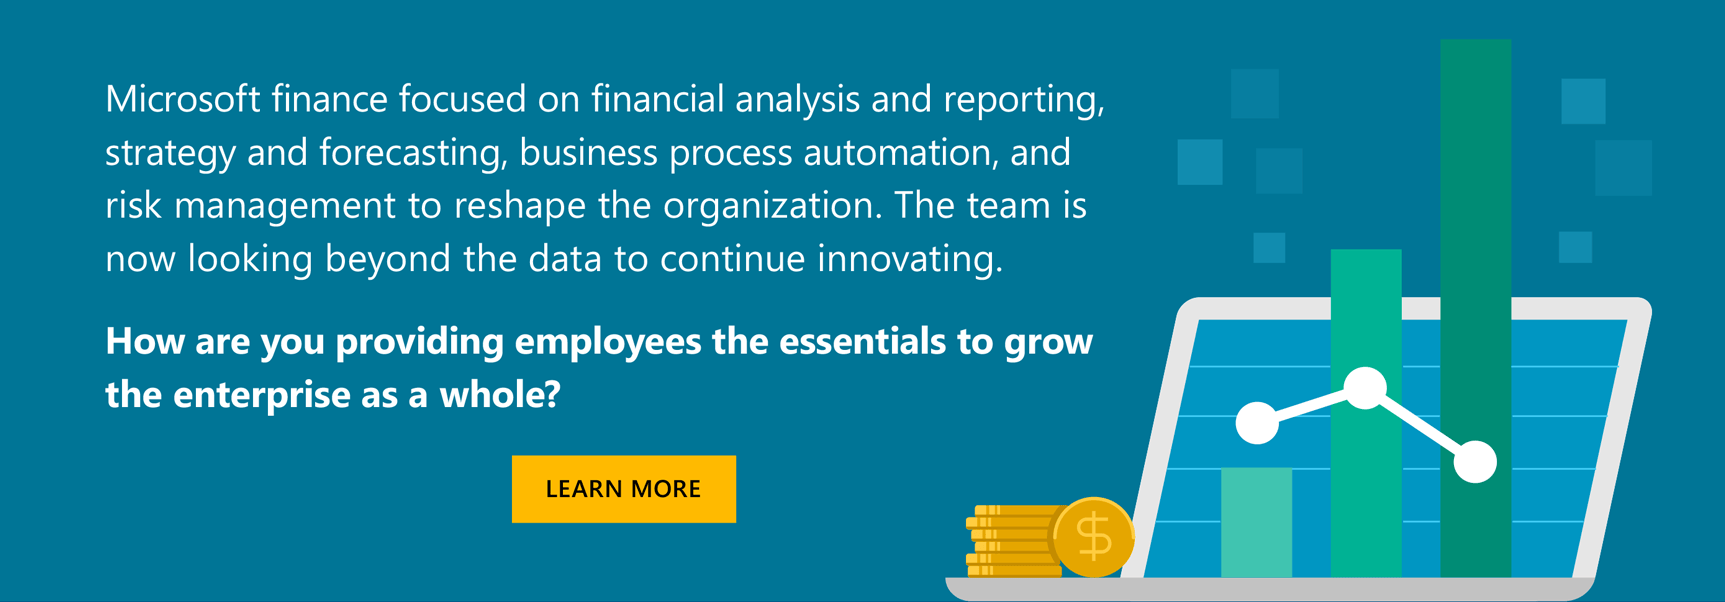 How are you providing employees the essentials to grow the enterprise as a whole? Learn More.